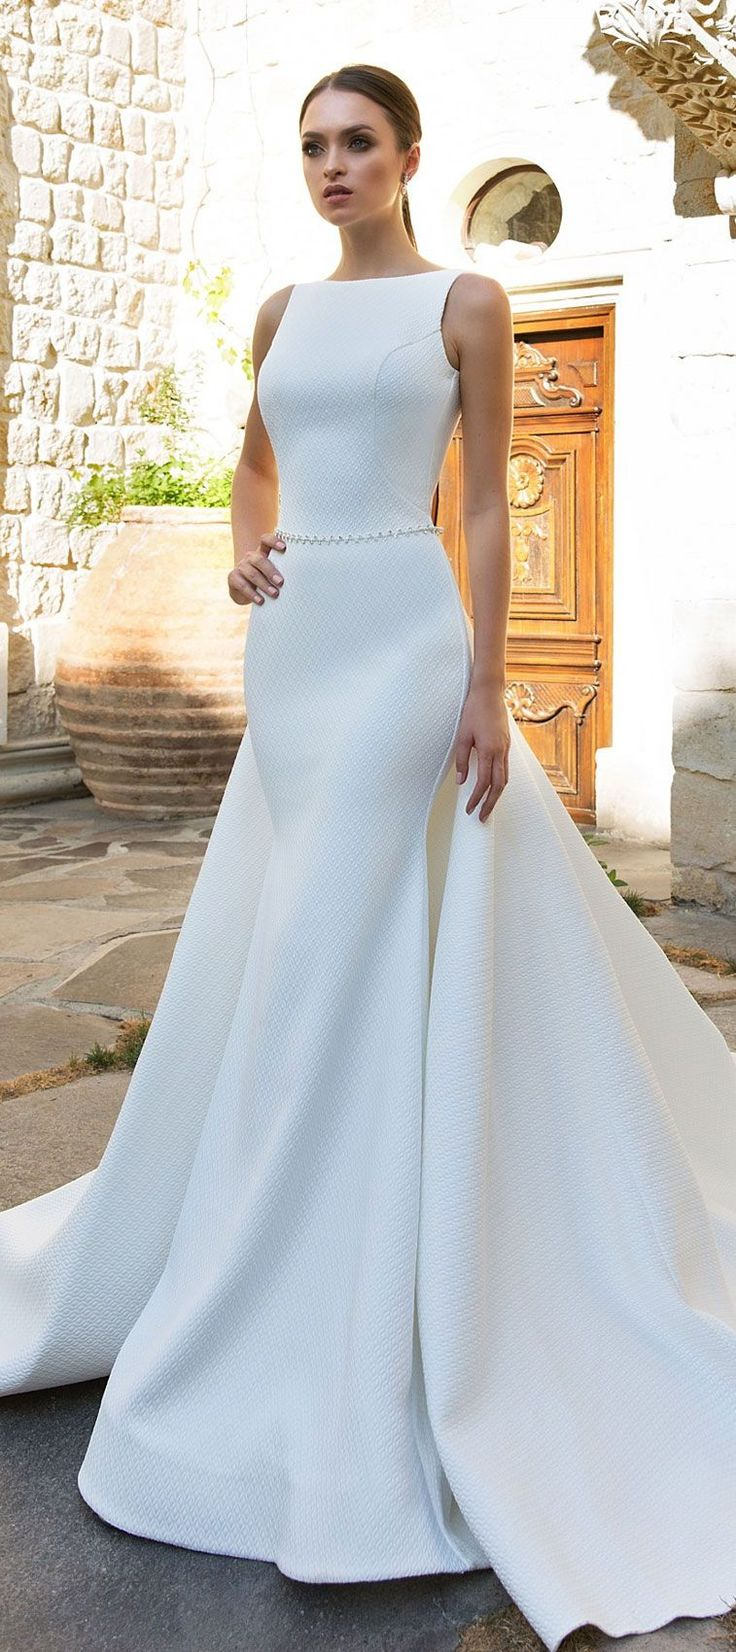 1589 best Amazing Wedding Dresses images on Pinterest | Wedding ...